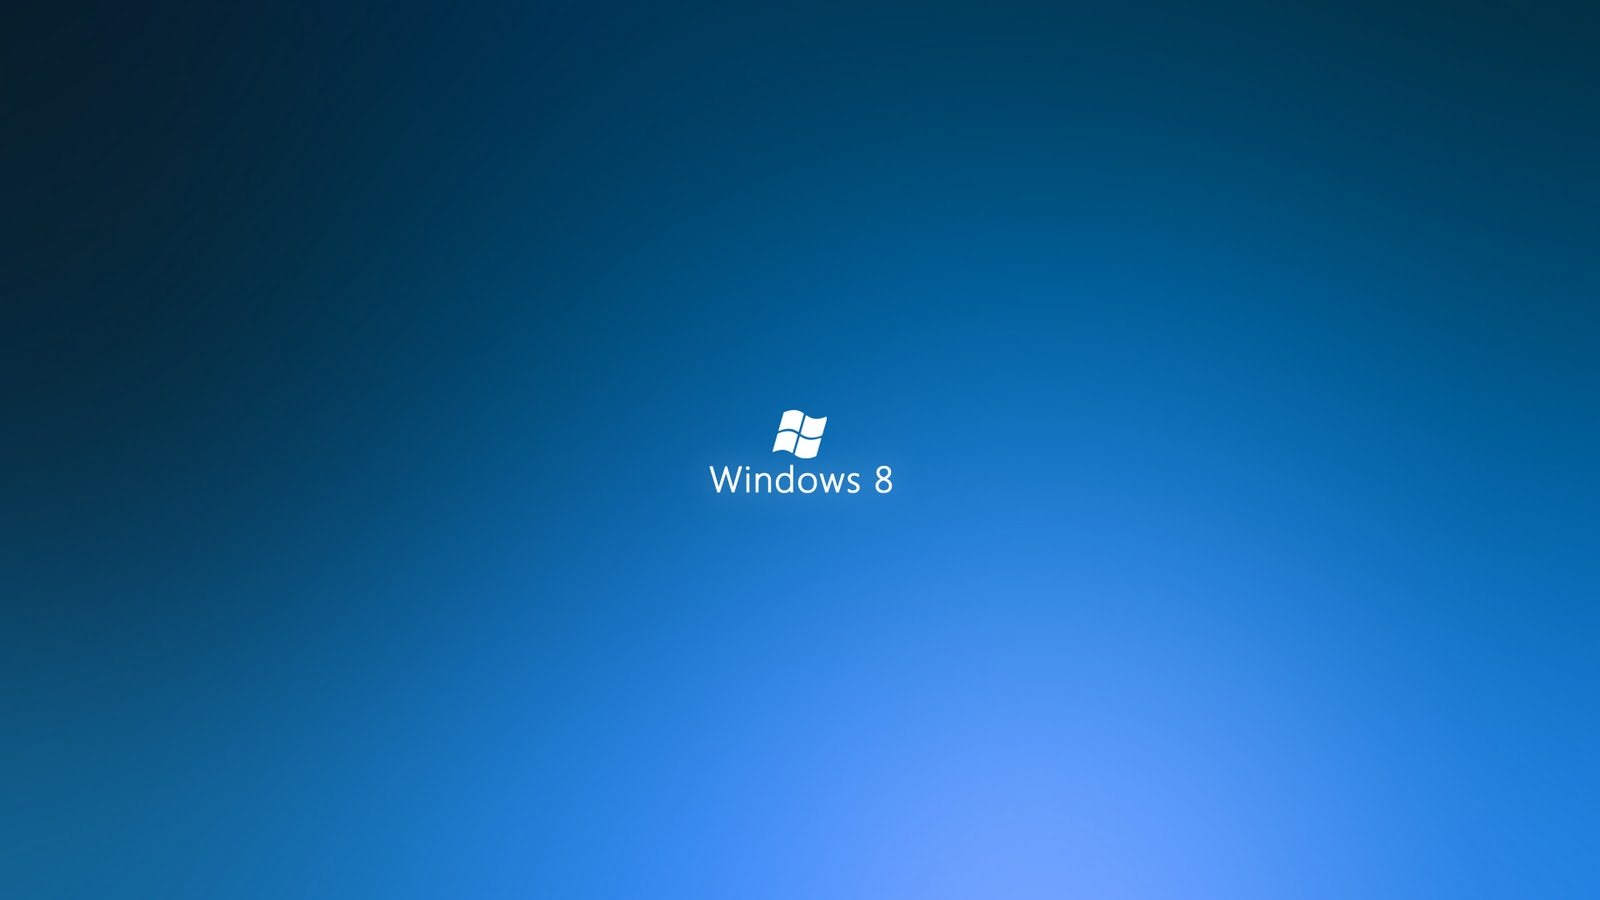 windows 8 wallpapers Download New wallpapers High 1600x900